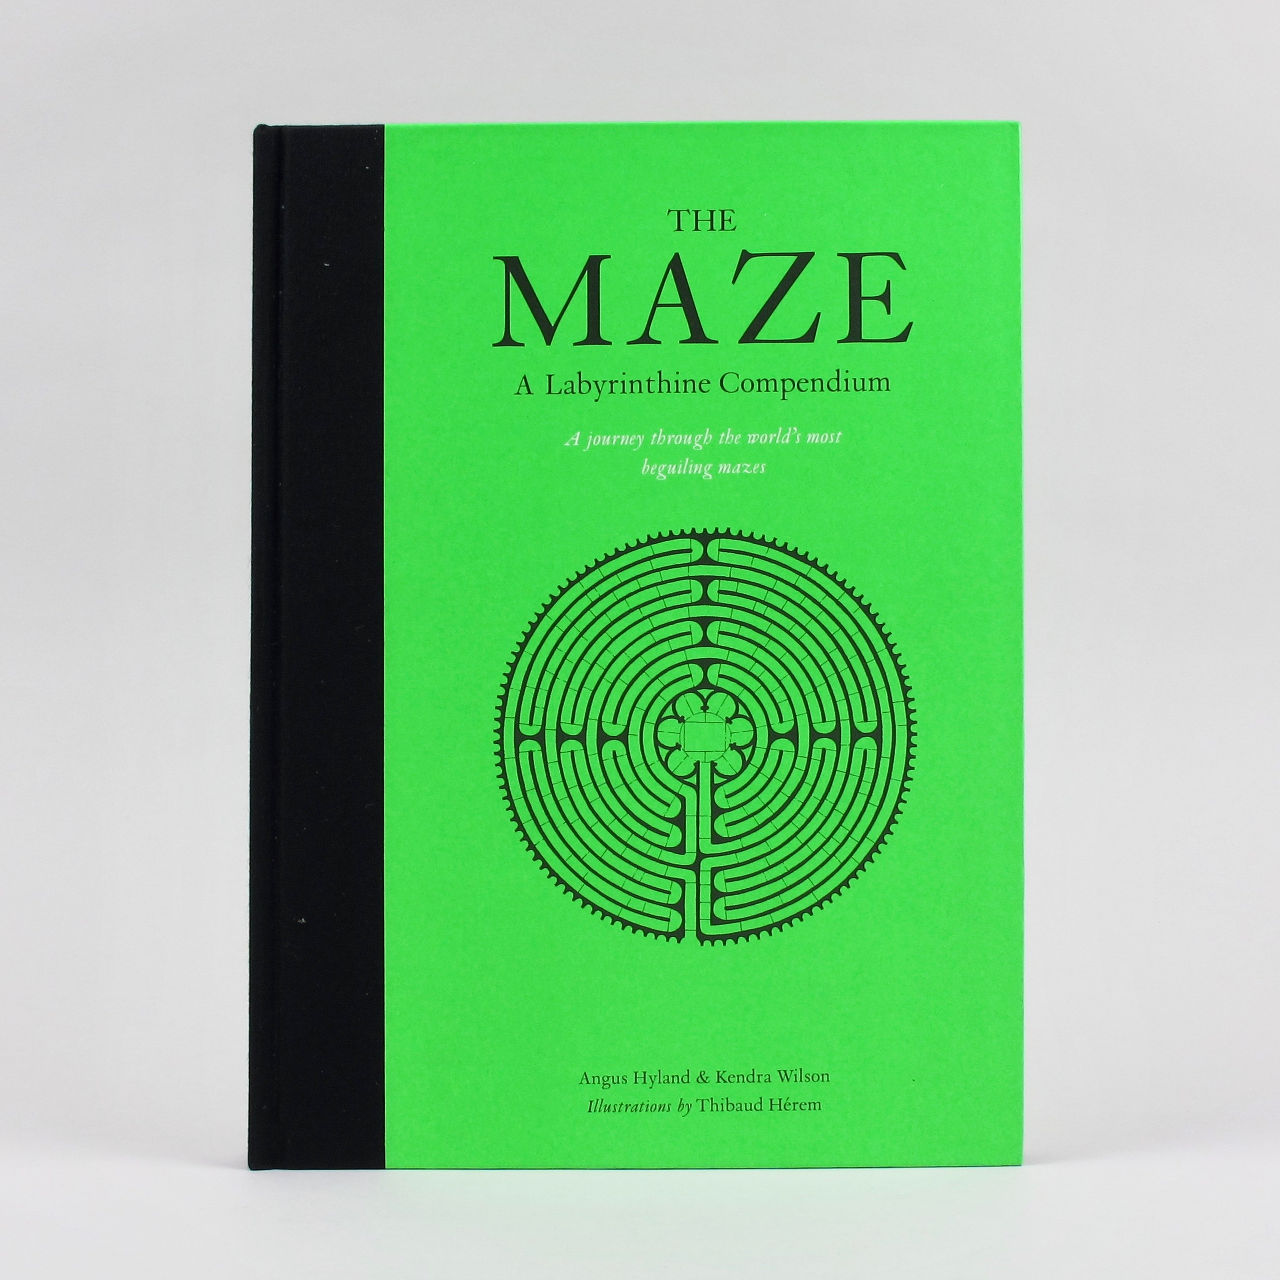 The Maze: A Labyrinthine Compendium - Angus Hyland and Kendra Wilson